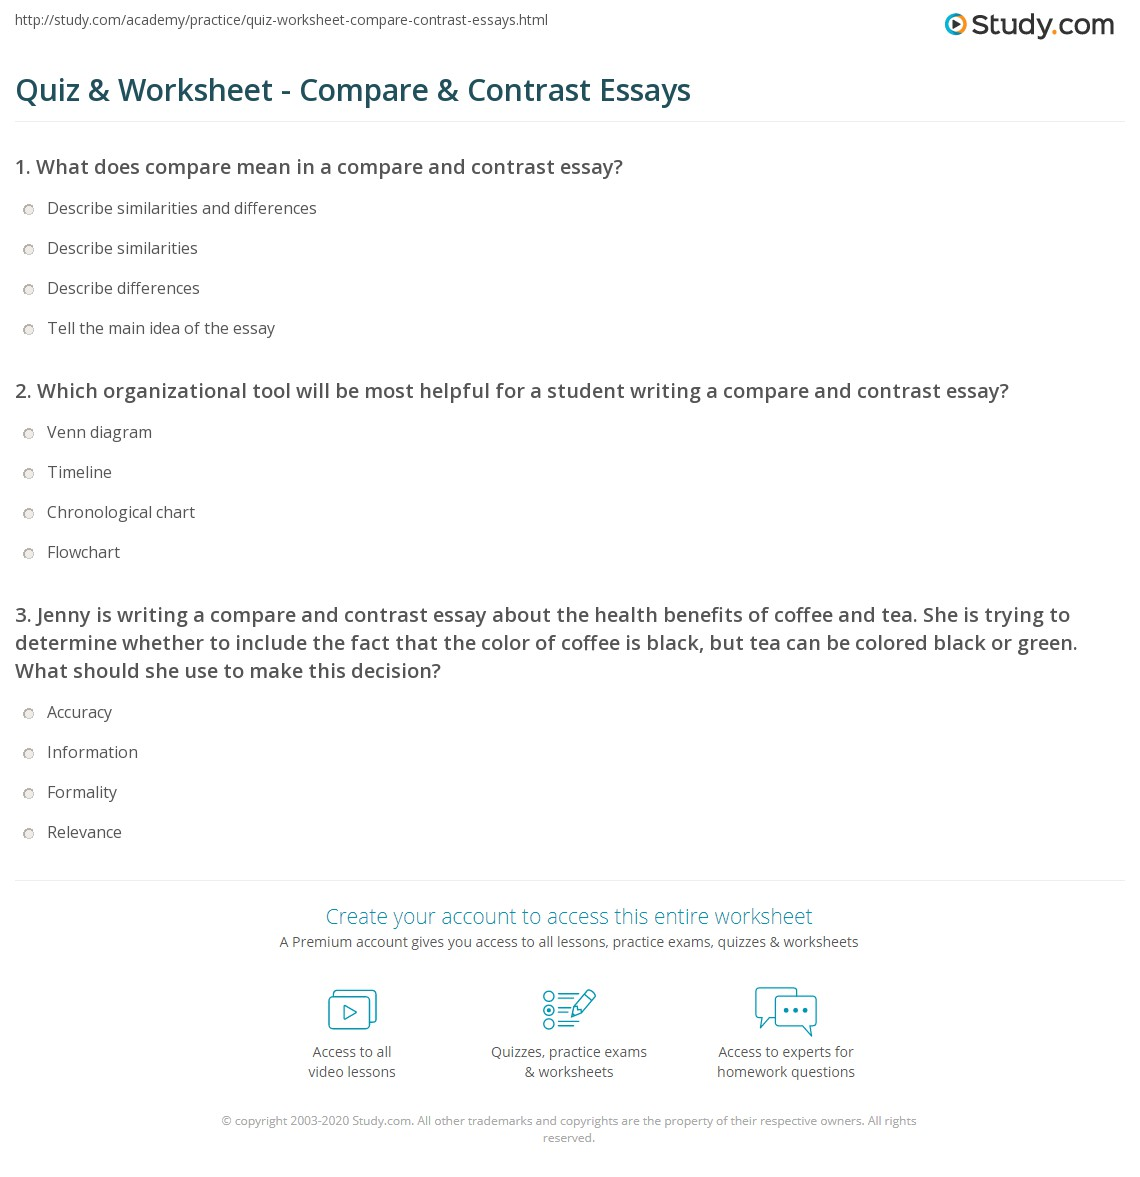 quiz worksheet compare contrast essays com which organizational tool will be most helpful for a student writing a compare and contrast essay